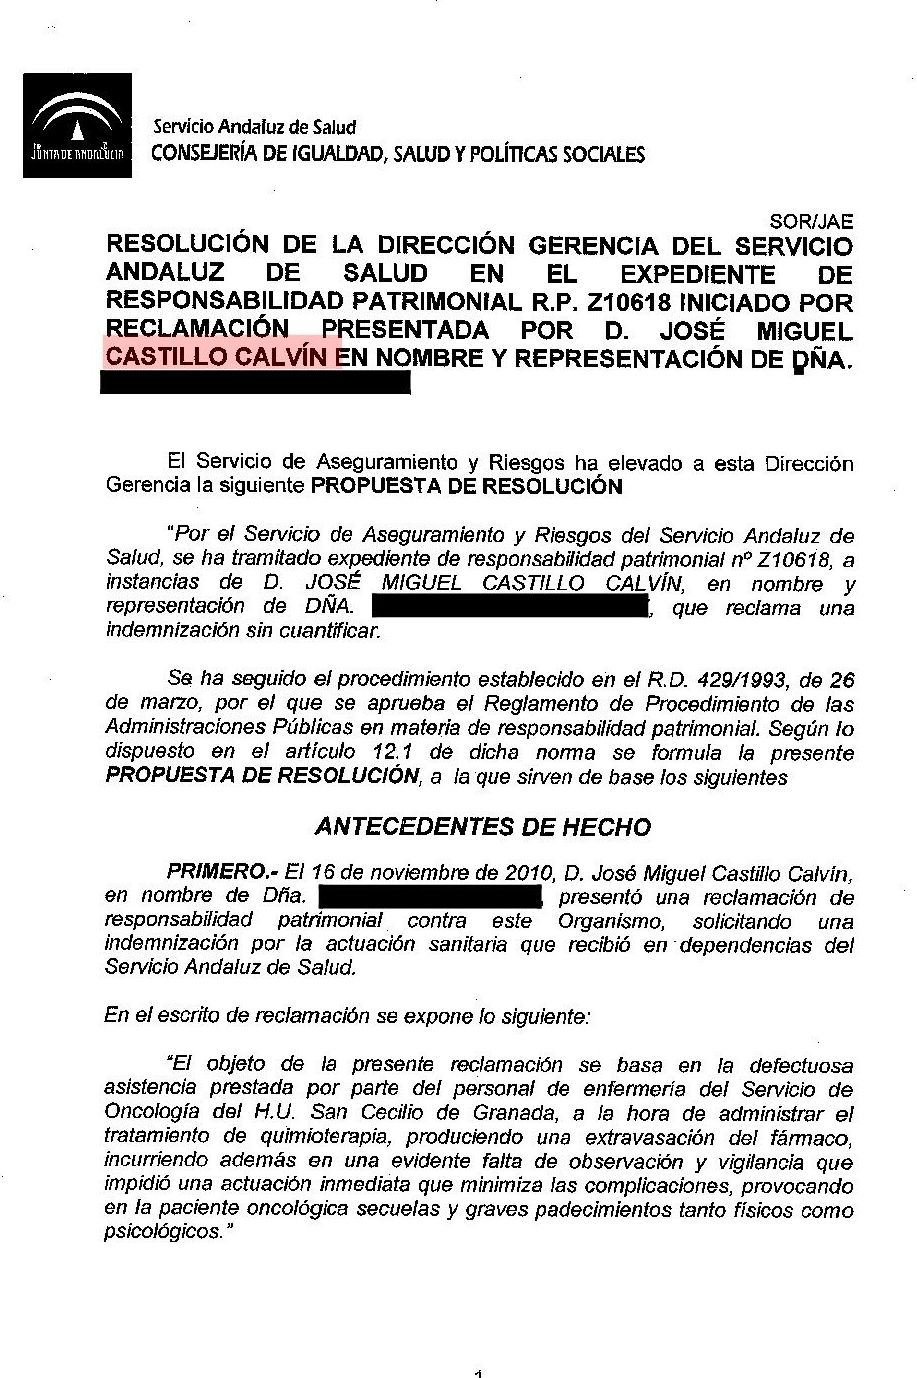 resolución favorable que indemniza negligencia médica